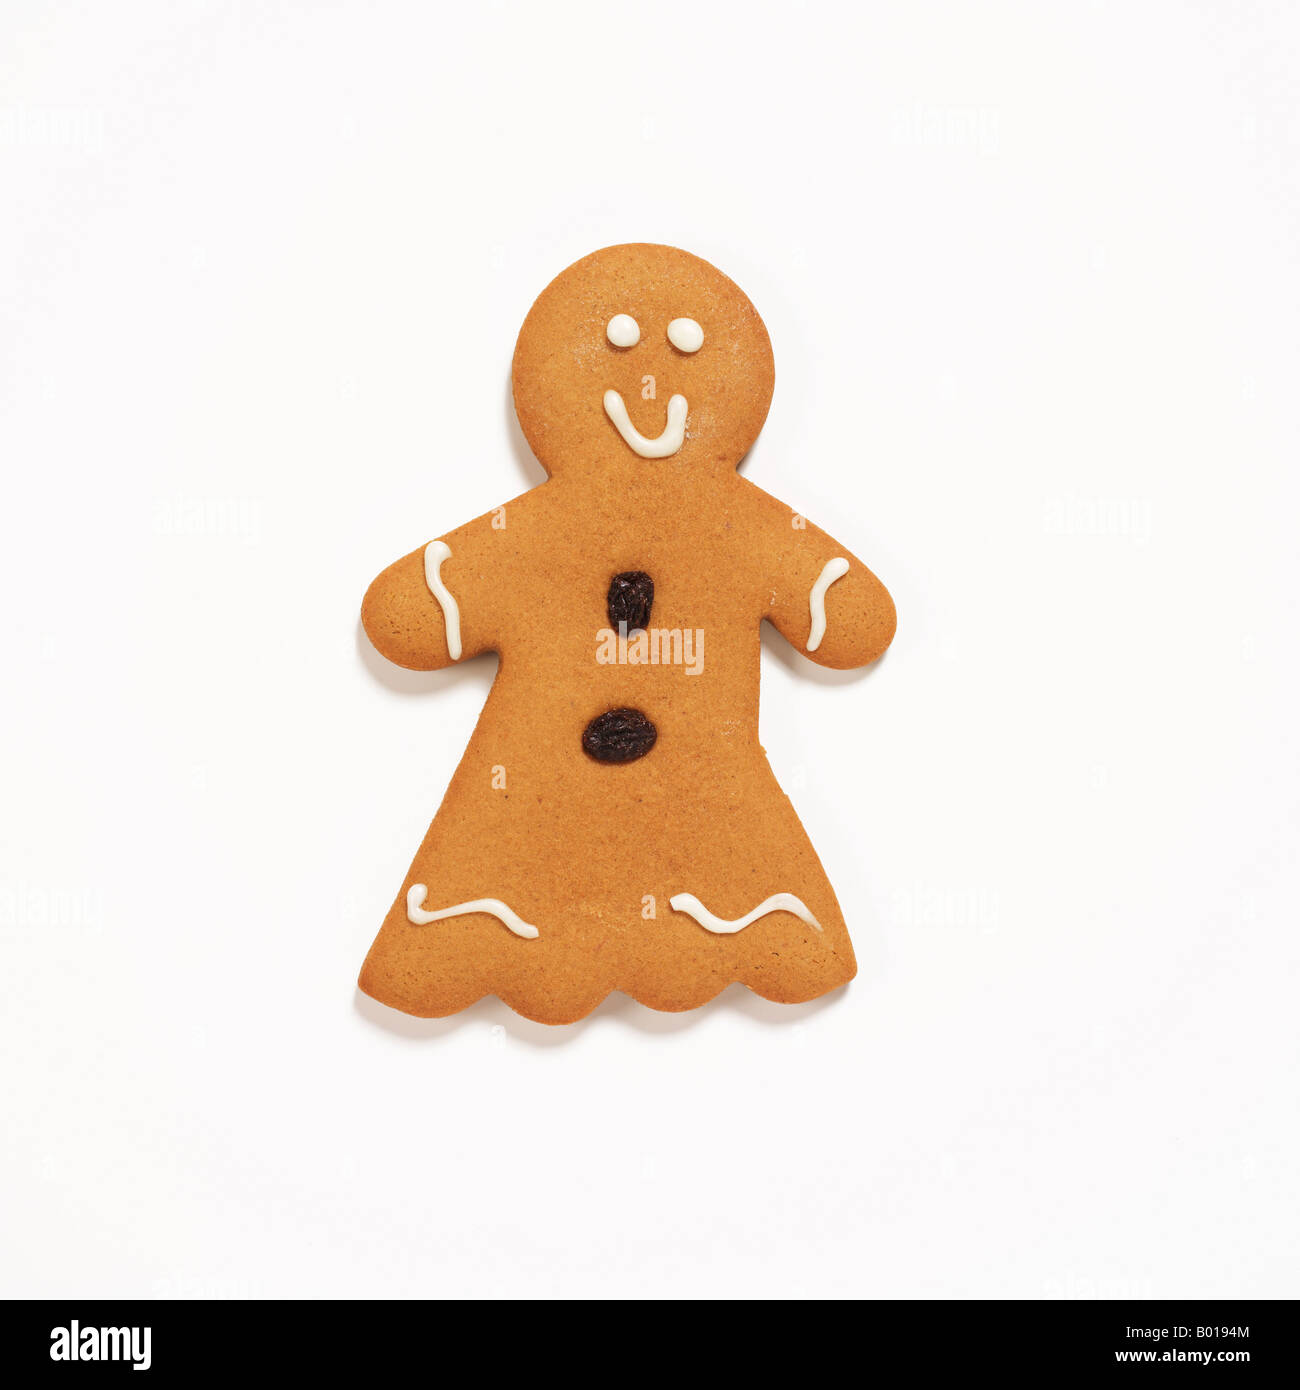 Gingerbread cookie Photo Stock